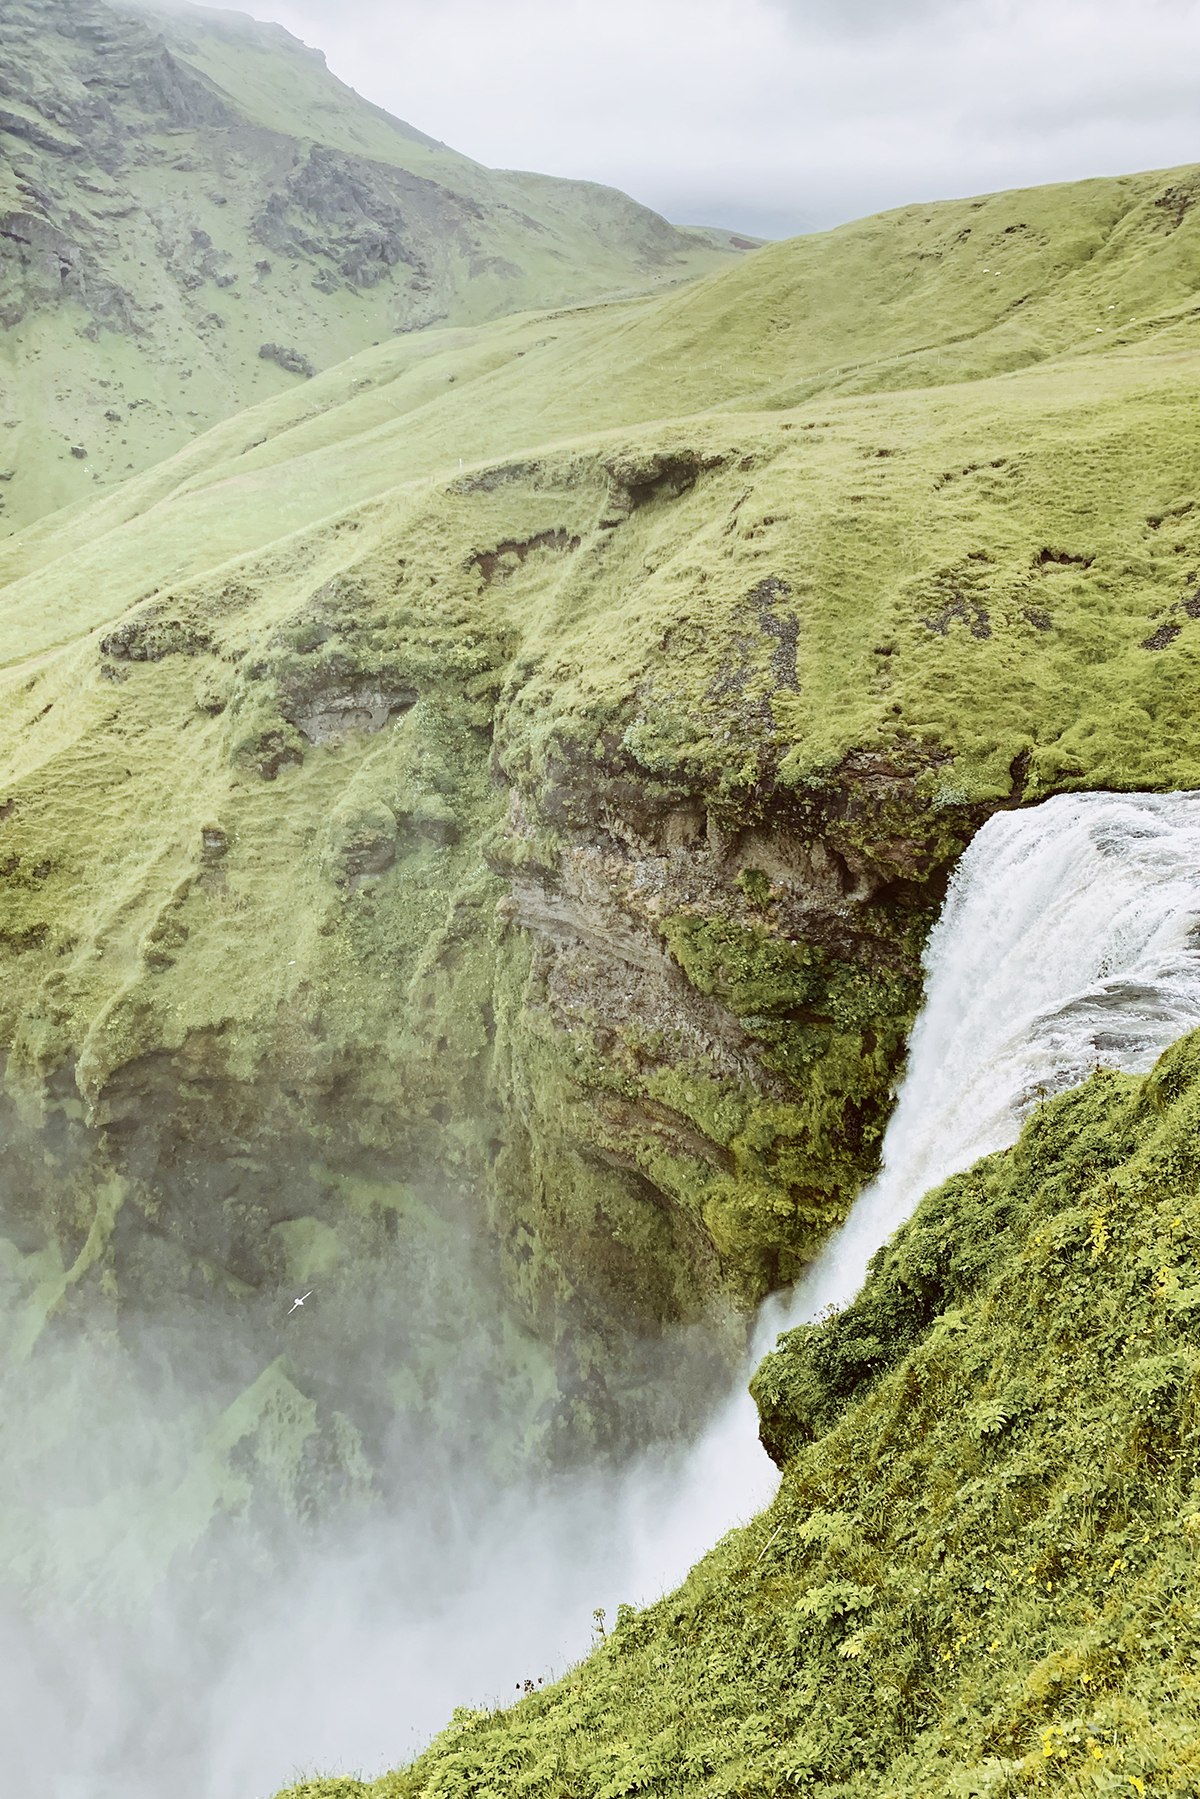 Photo by Barrett Brynestad of Icelandic waterfall